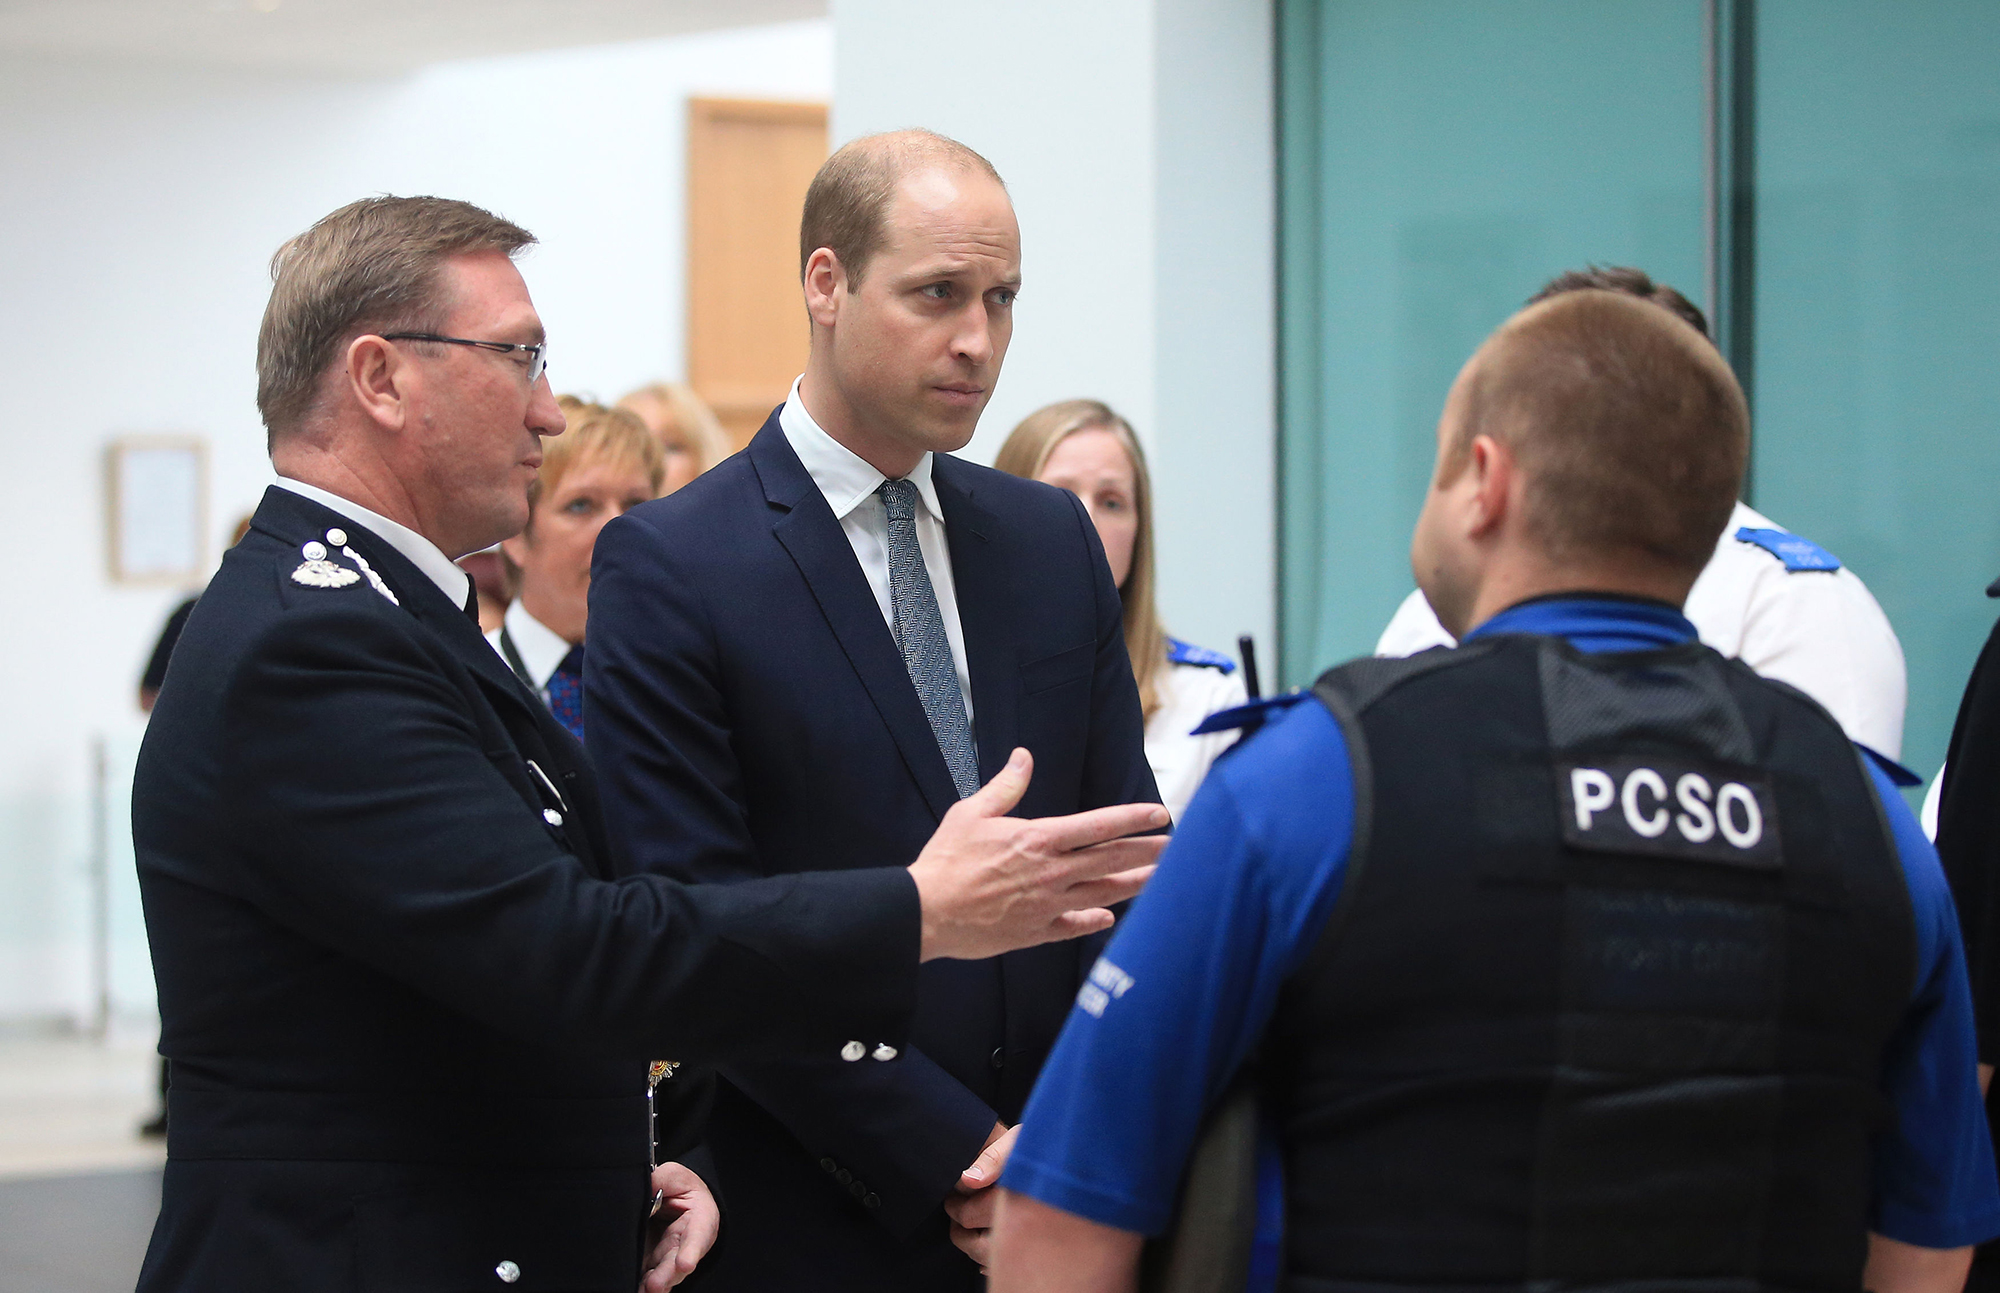 Prince William Visits the Headquarters of the Greater Manchester Police